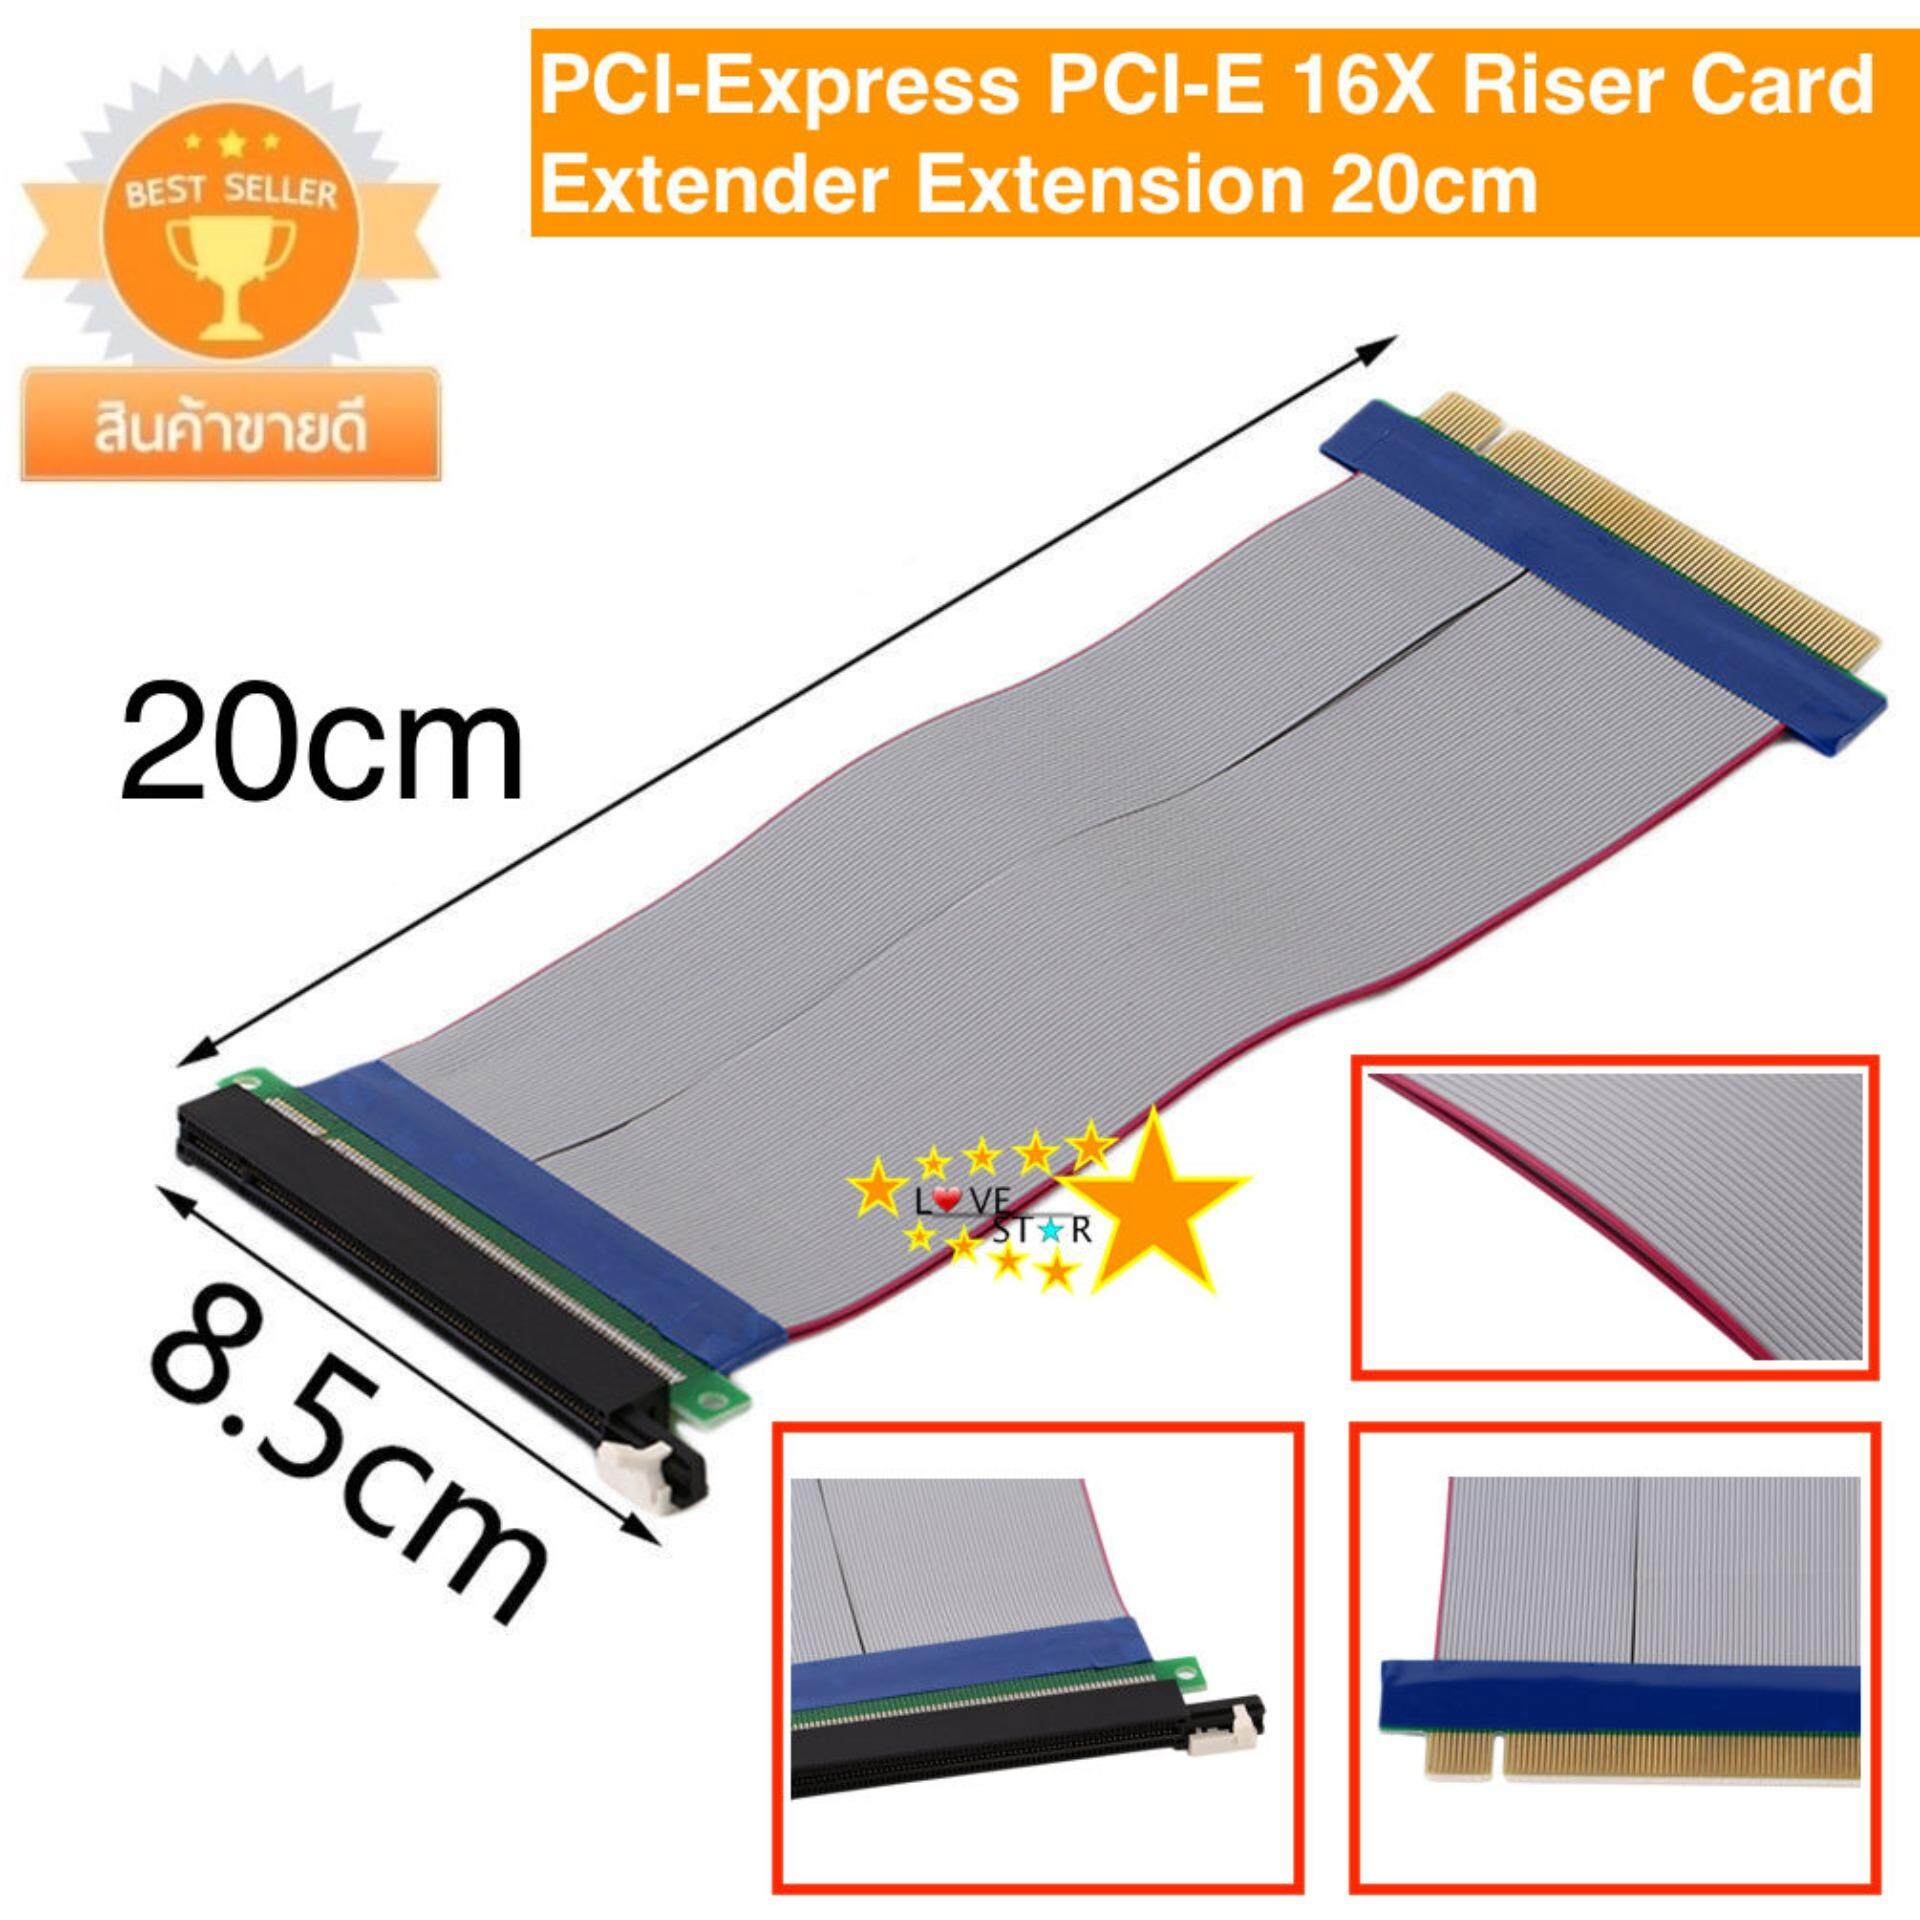 ใหม่!!! สาย PCI-E Express PCI-E 16X Slots Riser Card Flexible Ribbon Extender Adapter Cable 20ซม.